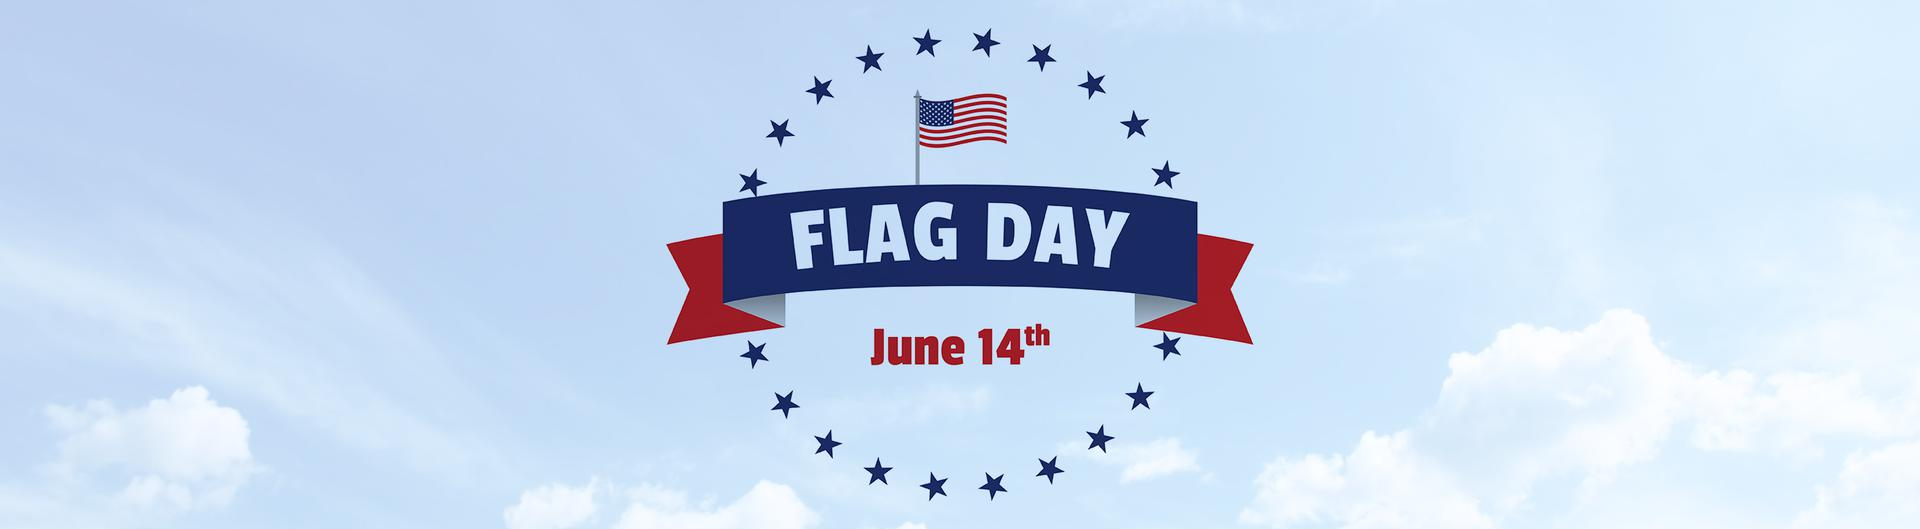 Flag Day - June 14th